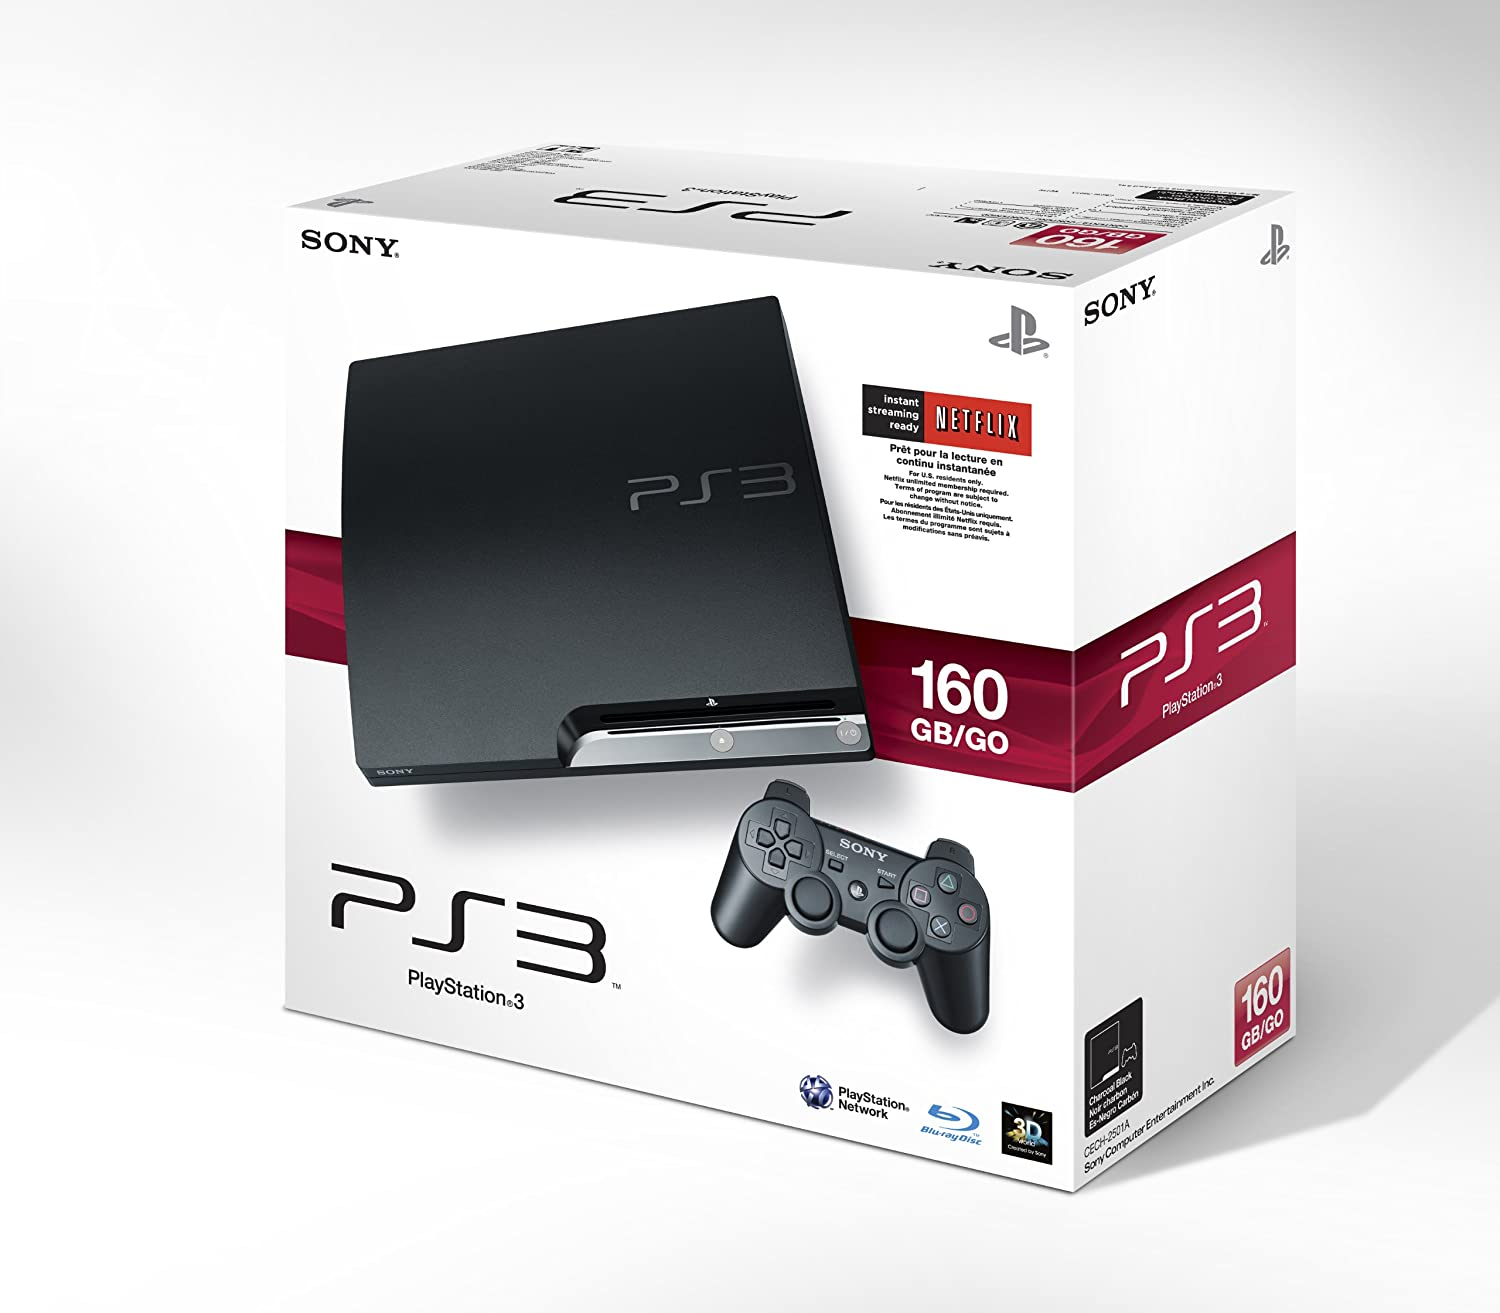 Sony Playstation 3 160gb System Video Games How To Repair Your Plasystation Laser